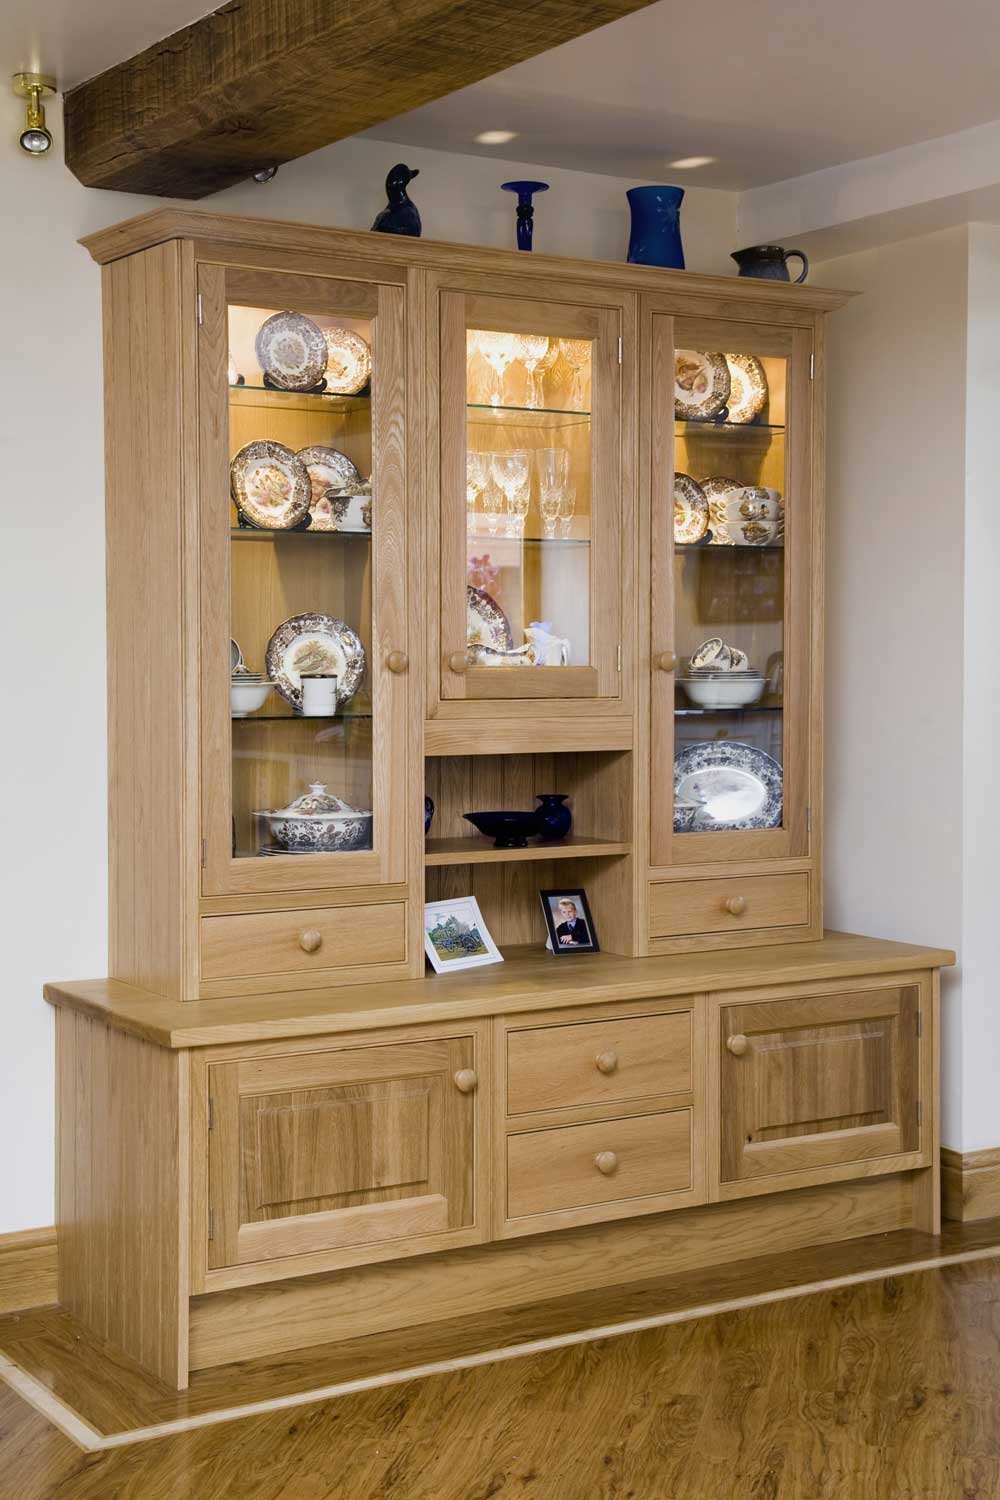 Kitchen Display Cabinet and Drawers for Country Style Barn Kitchen